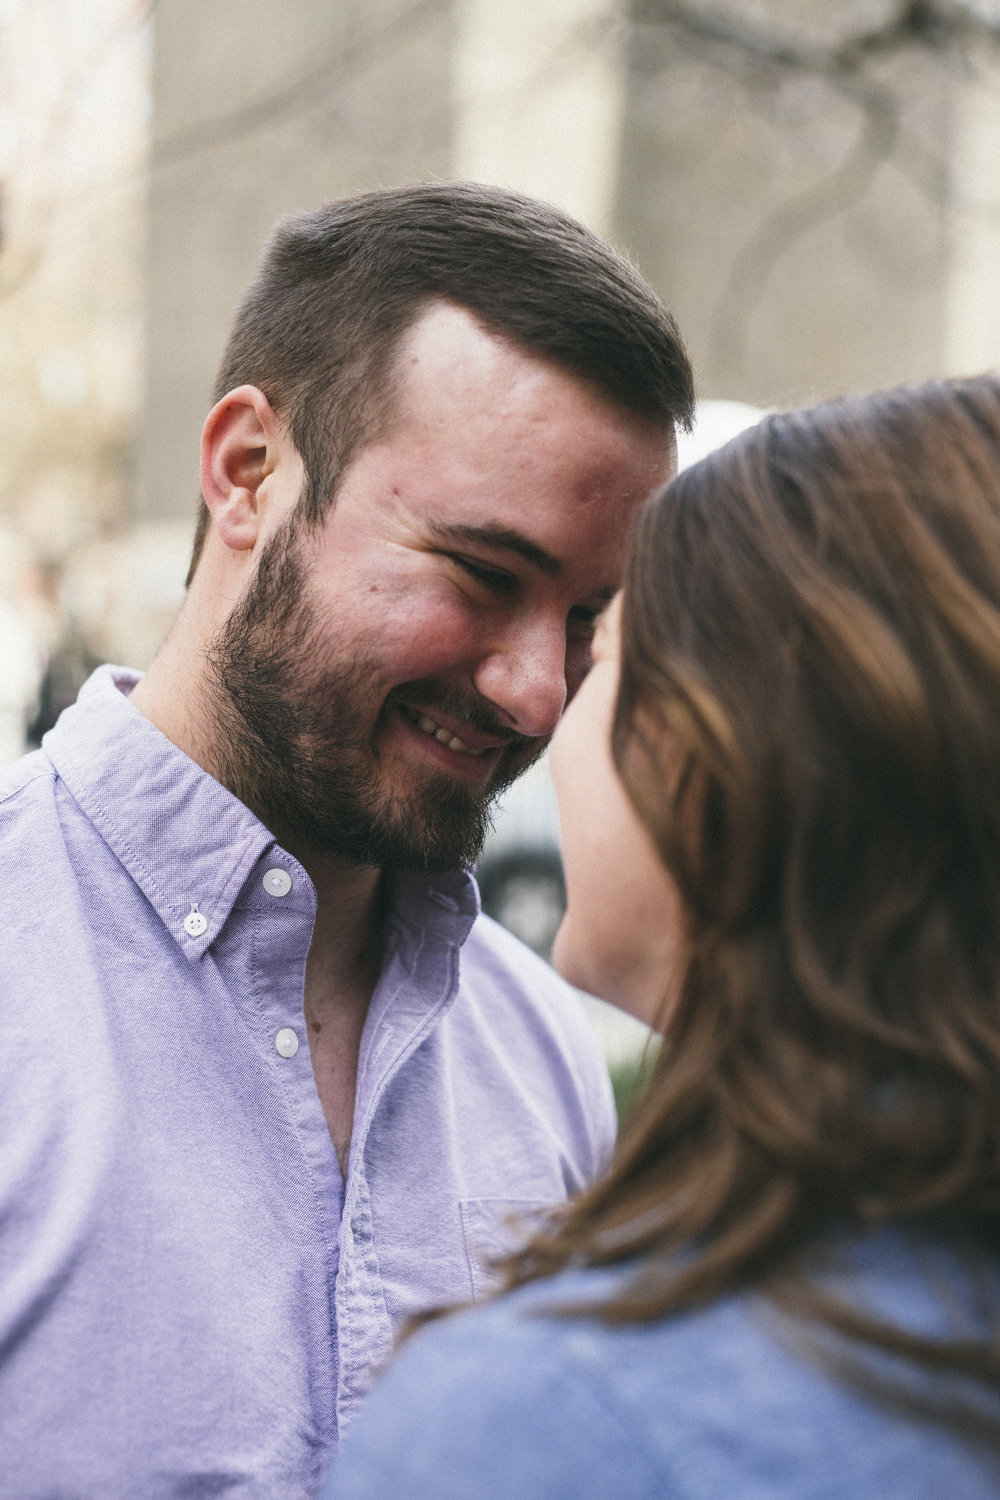 Engagement-Photographer-Chicago-McHenry_2.jpg